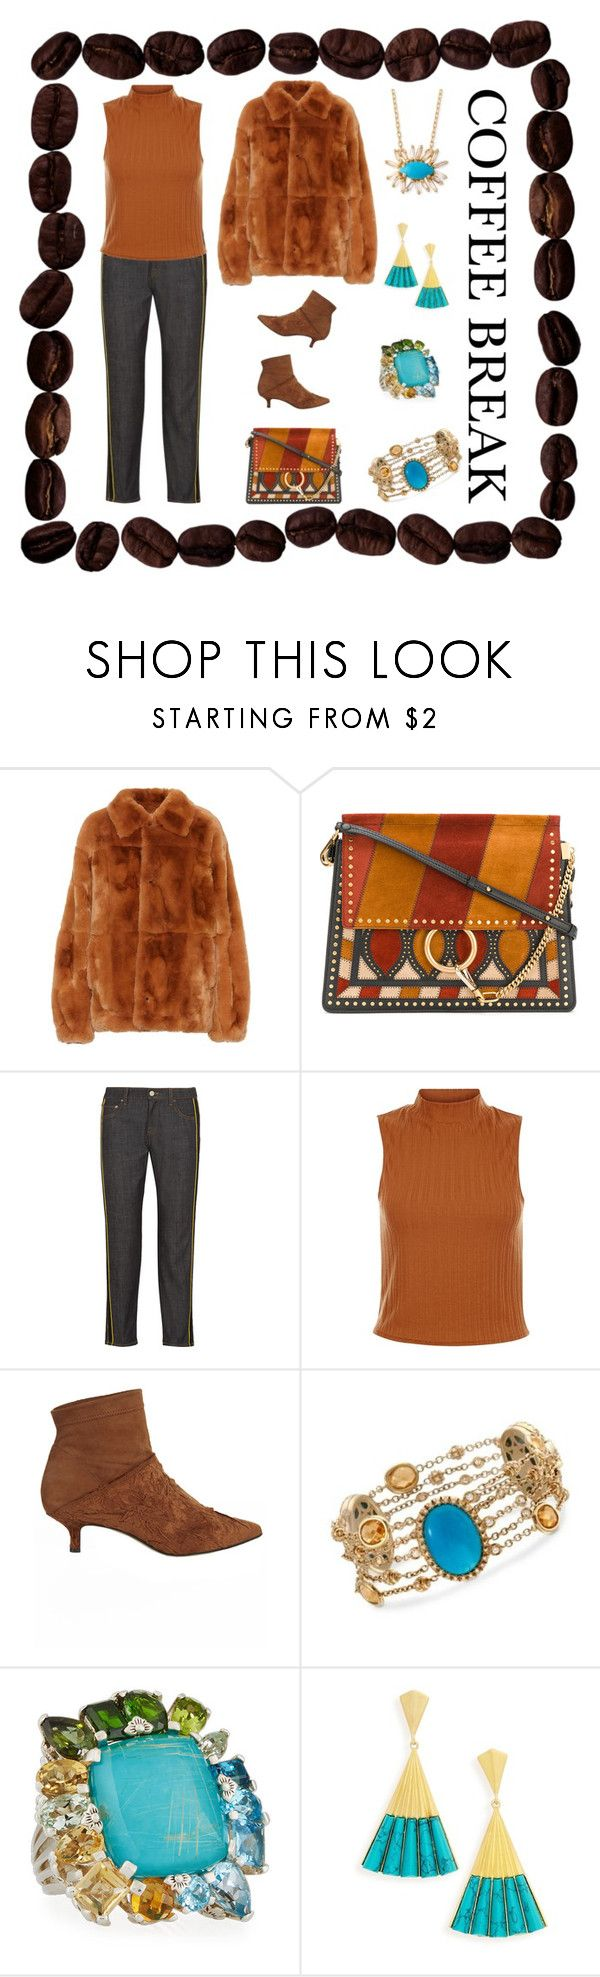 """Caffeine Fix: Coffee Break"" by karen-galves ❤ liked on Polyvore featuring Chloé, Victoria, Victoria Beckham, TIBI, Ross-Simons, Stephen Dweck, Dean Davidson, Suzanne Kalan and coffeebreak"